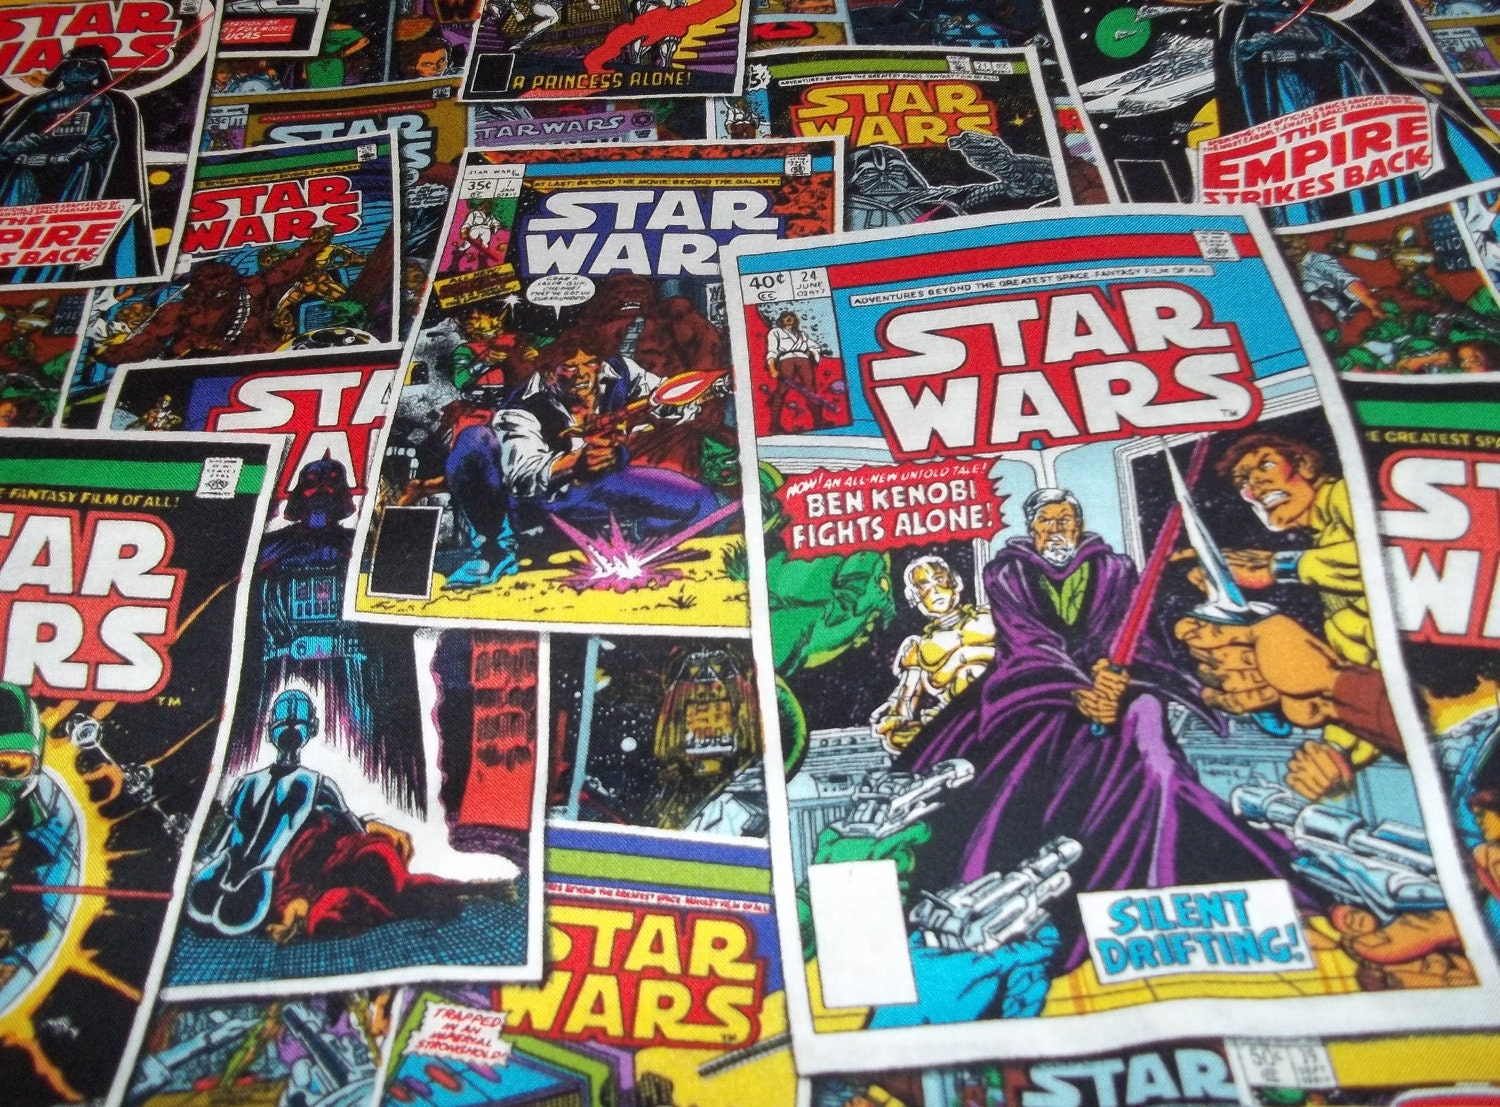 Star wars comic book fabric by the yard fbty for Star wars fabric